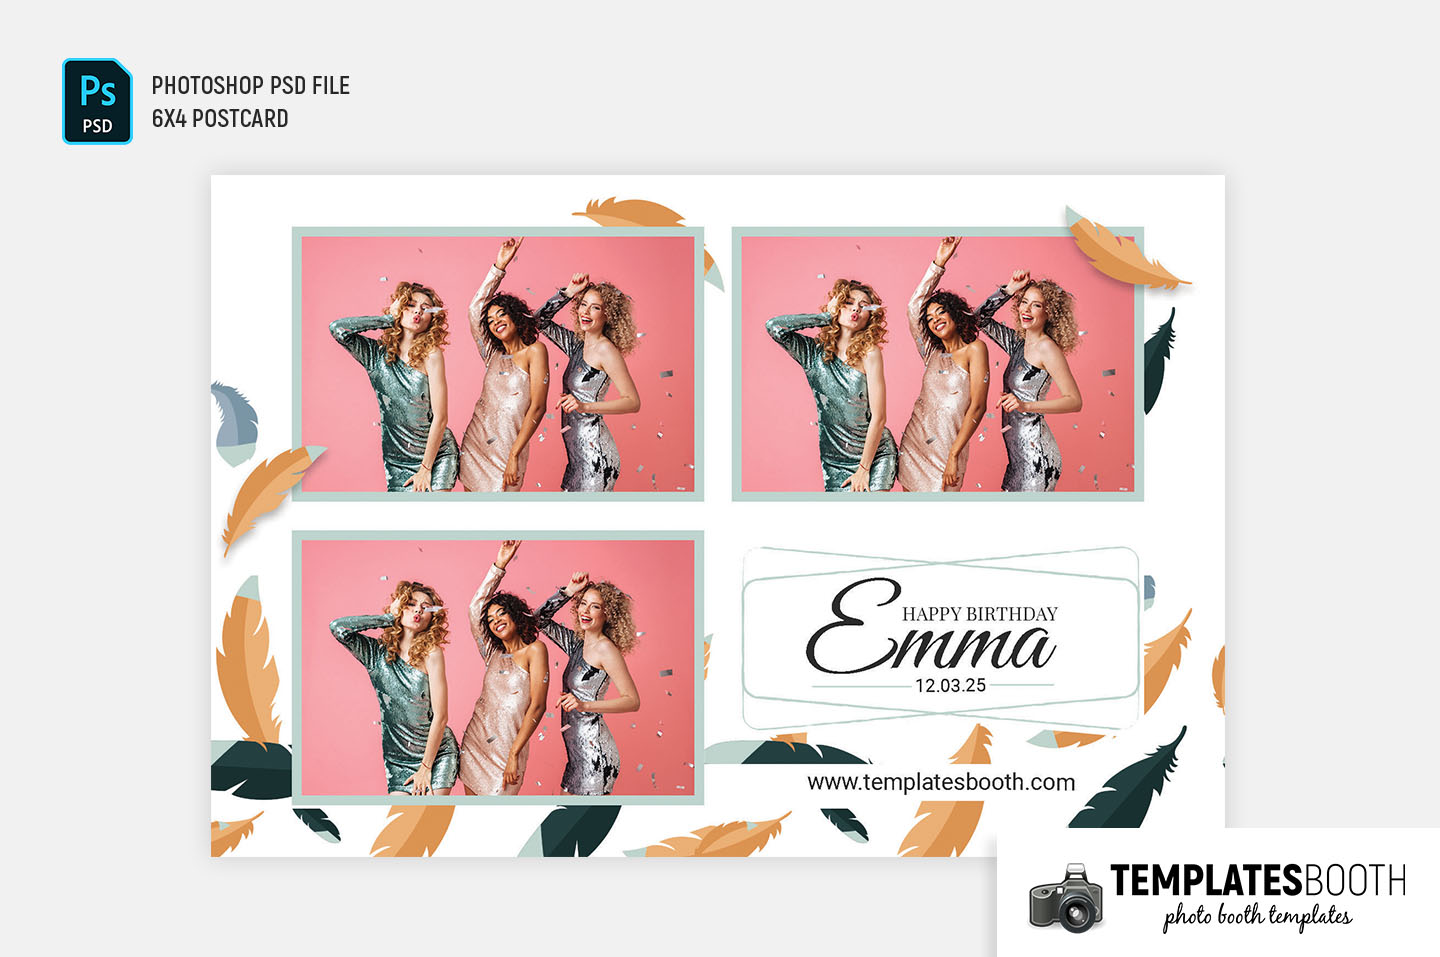 Feathered Birthday Party Photo Booth Template